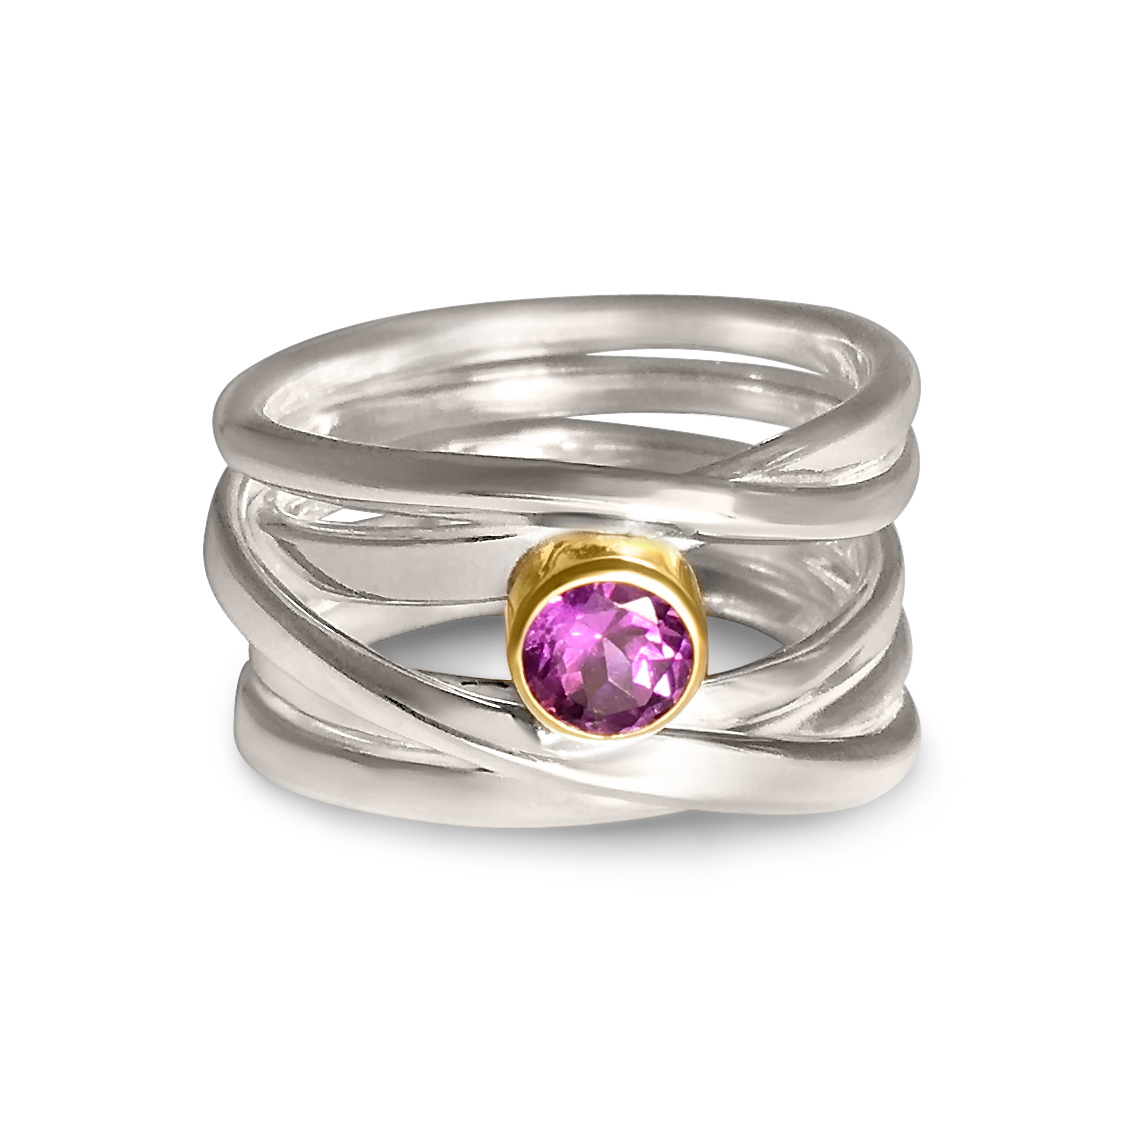 One-of-a-Kind #232 || Sterling Onefooter Ring with Amethyst in 18k yellow gold bezel setting, Size 8